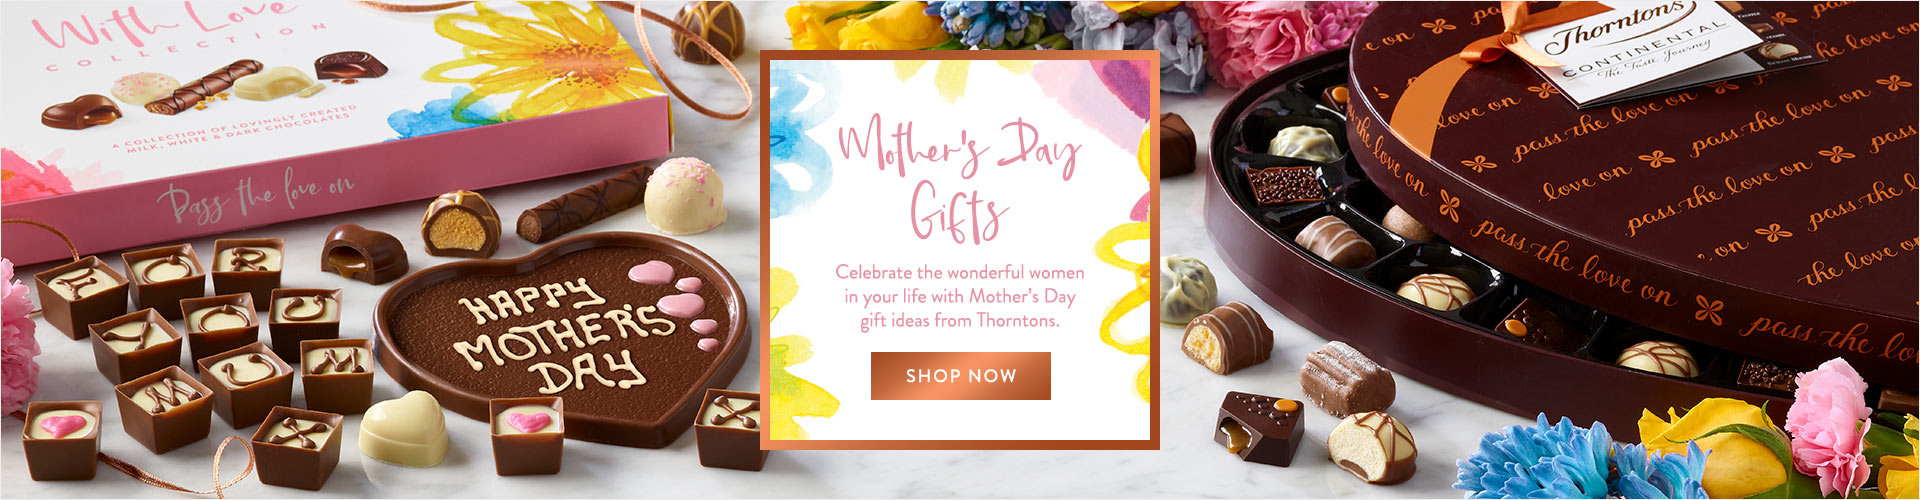 Whether she is your mum, step mum, grandma or someone else we have an extra special range of luxury Mother's Day chocolate gifts to make their day perfect